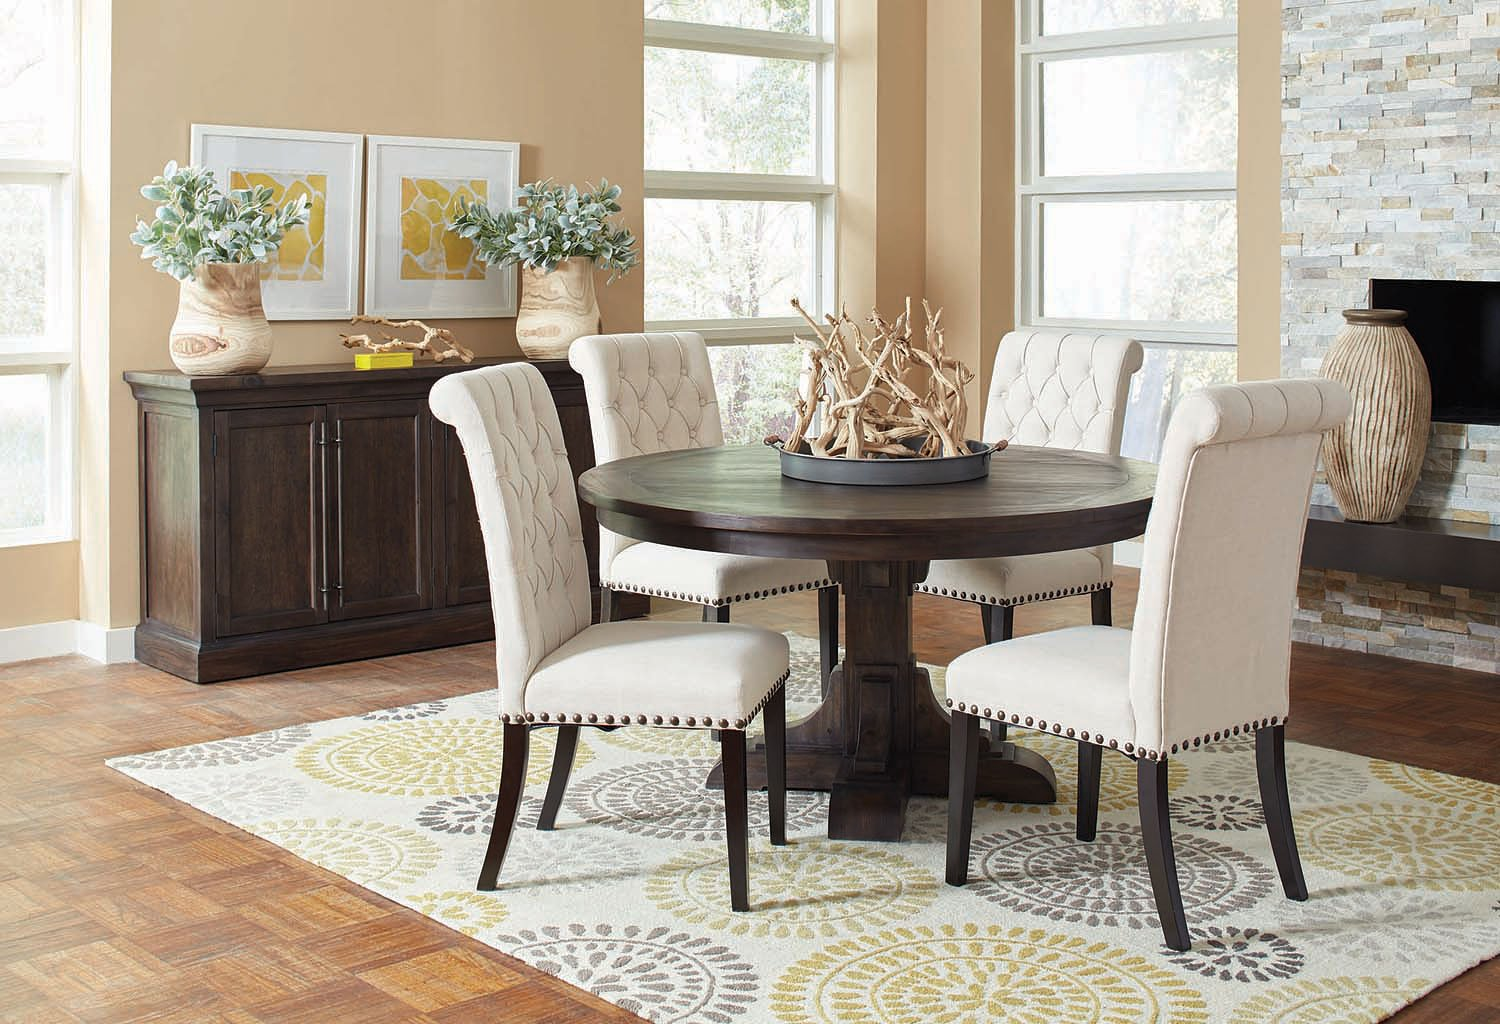 Weber Round Dining Room Set w Cream Chairs by Coaster Furniture  FurniturePick